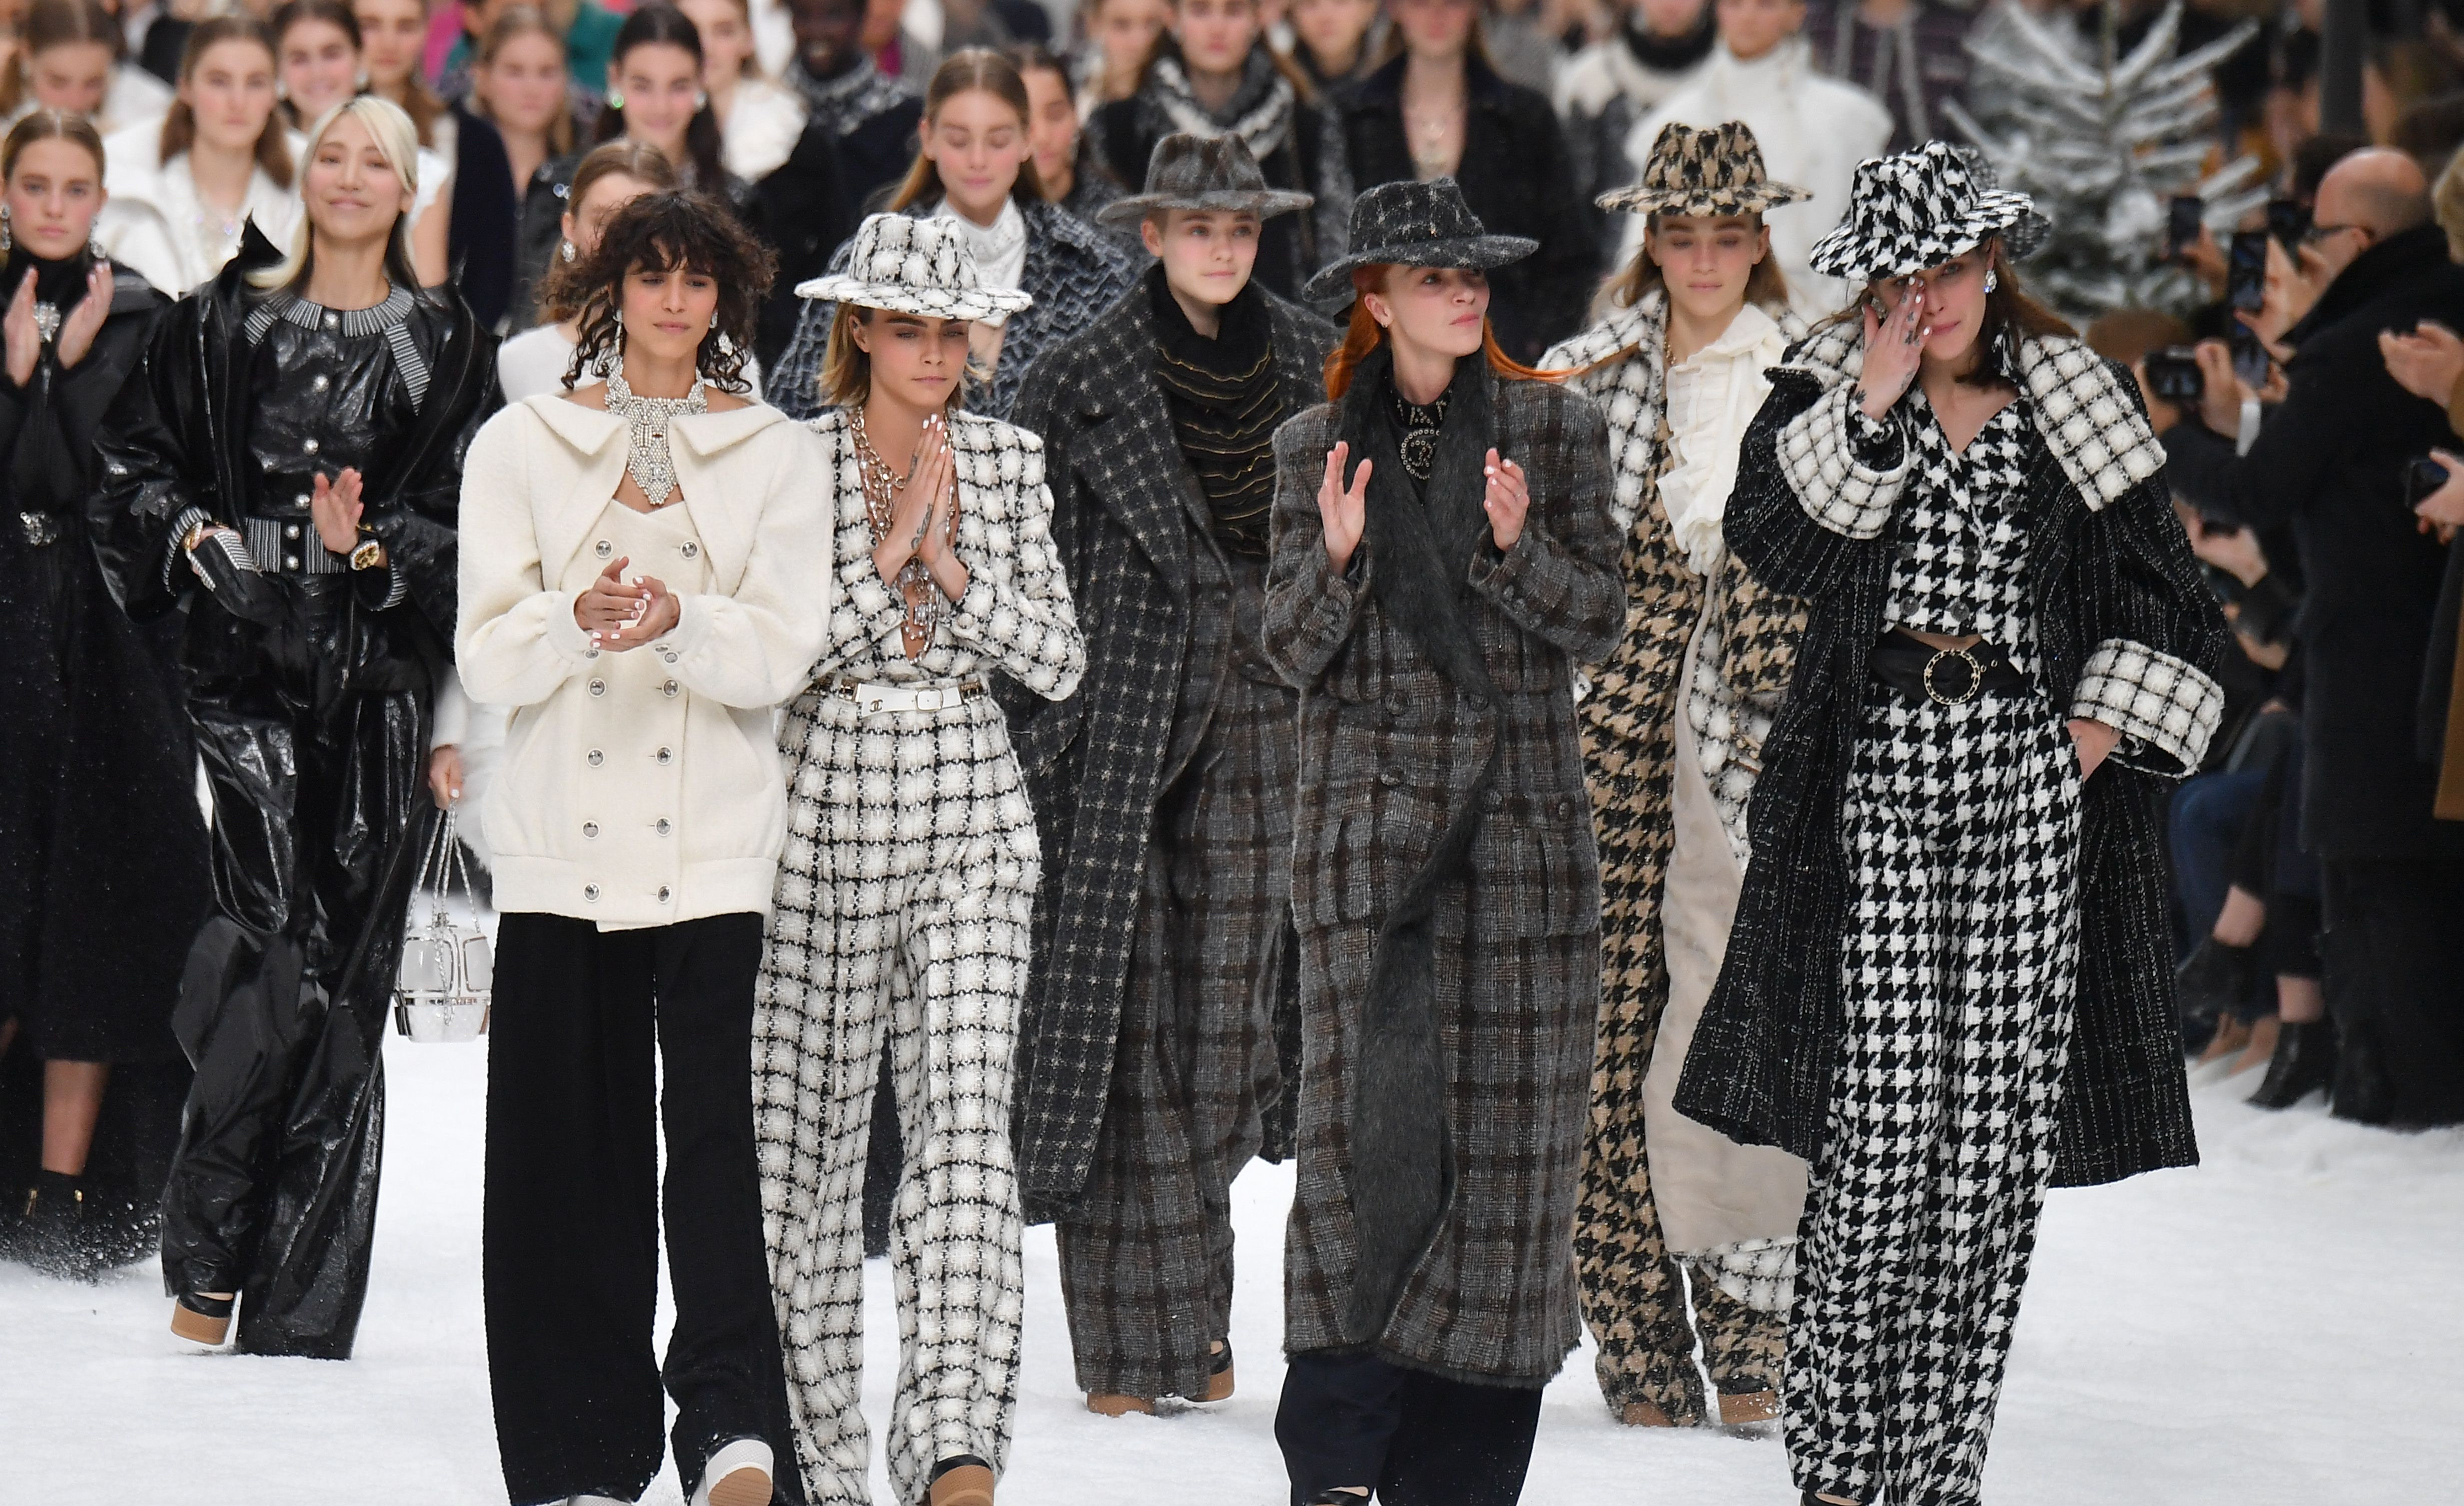 Chanel Pays Tribute to Karl Lagerfeld on a Snow-Covered Runway